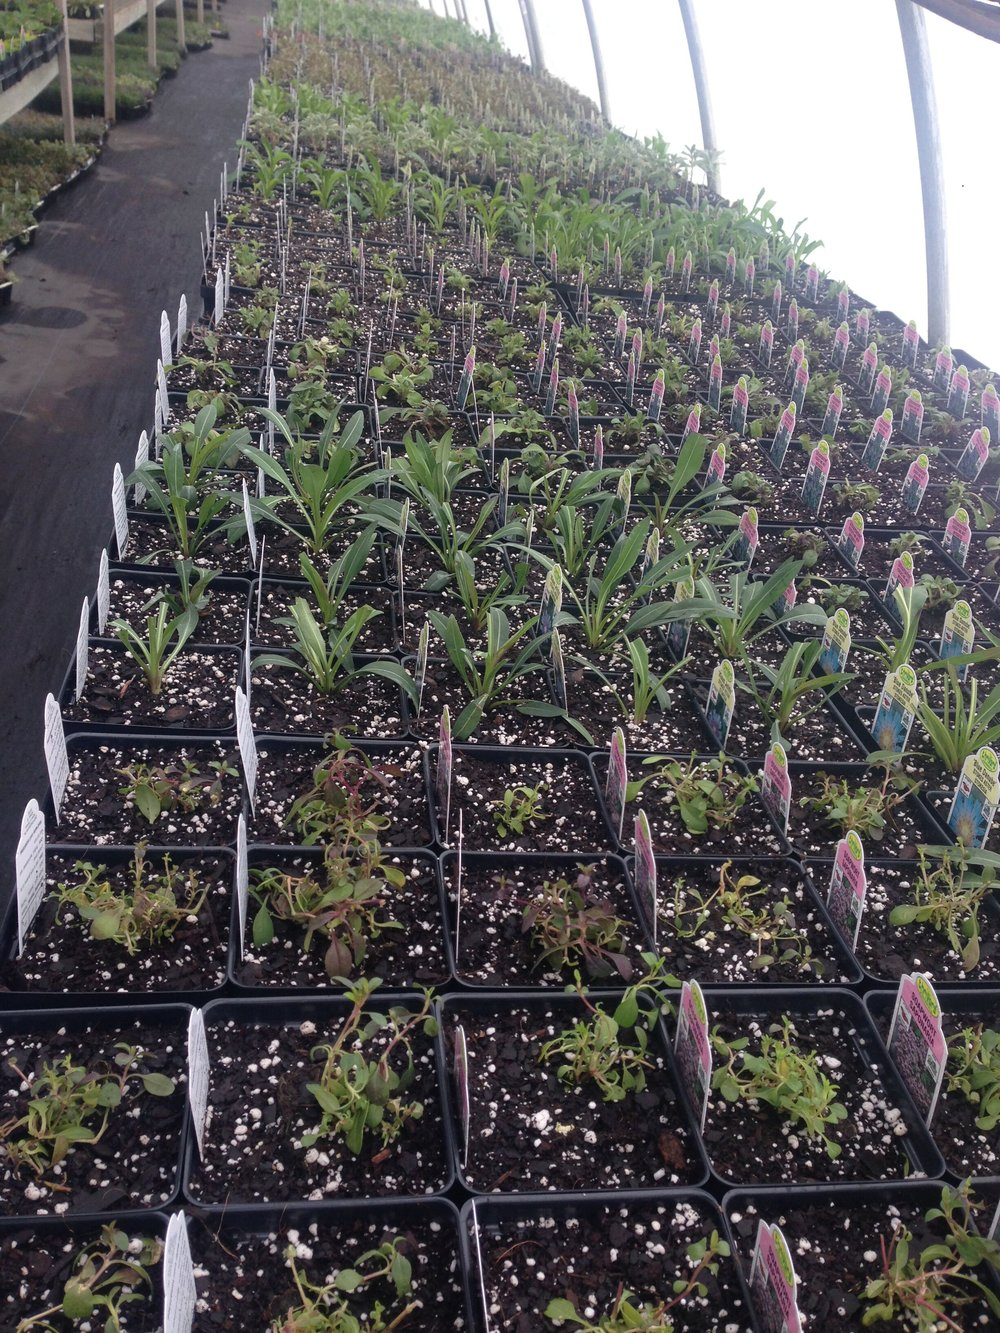 Growing on 4in perennials, its economical to buy your perennials early in smaller sizes. better for the plants too!